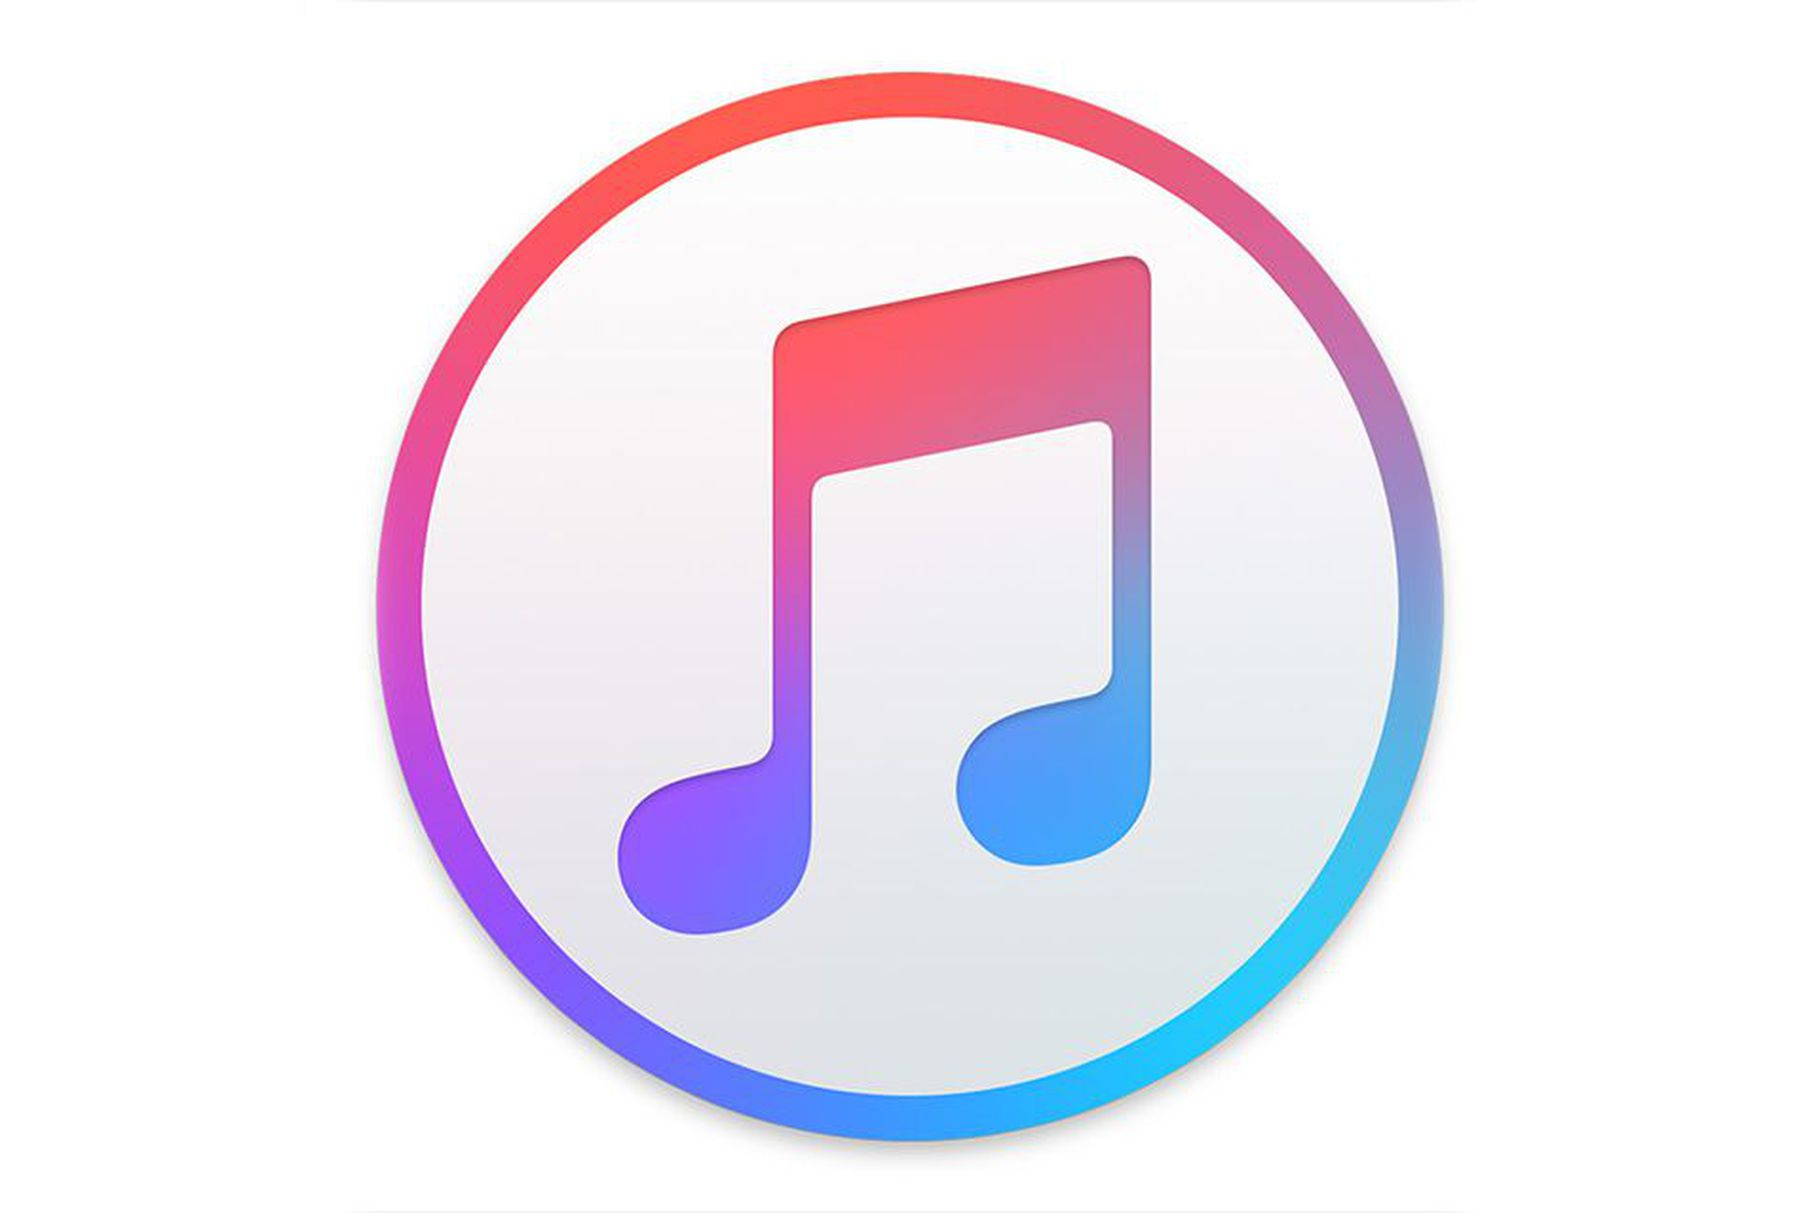 Apple is killing off iTunes LPs this month, leaked email confirms